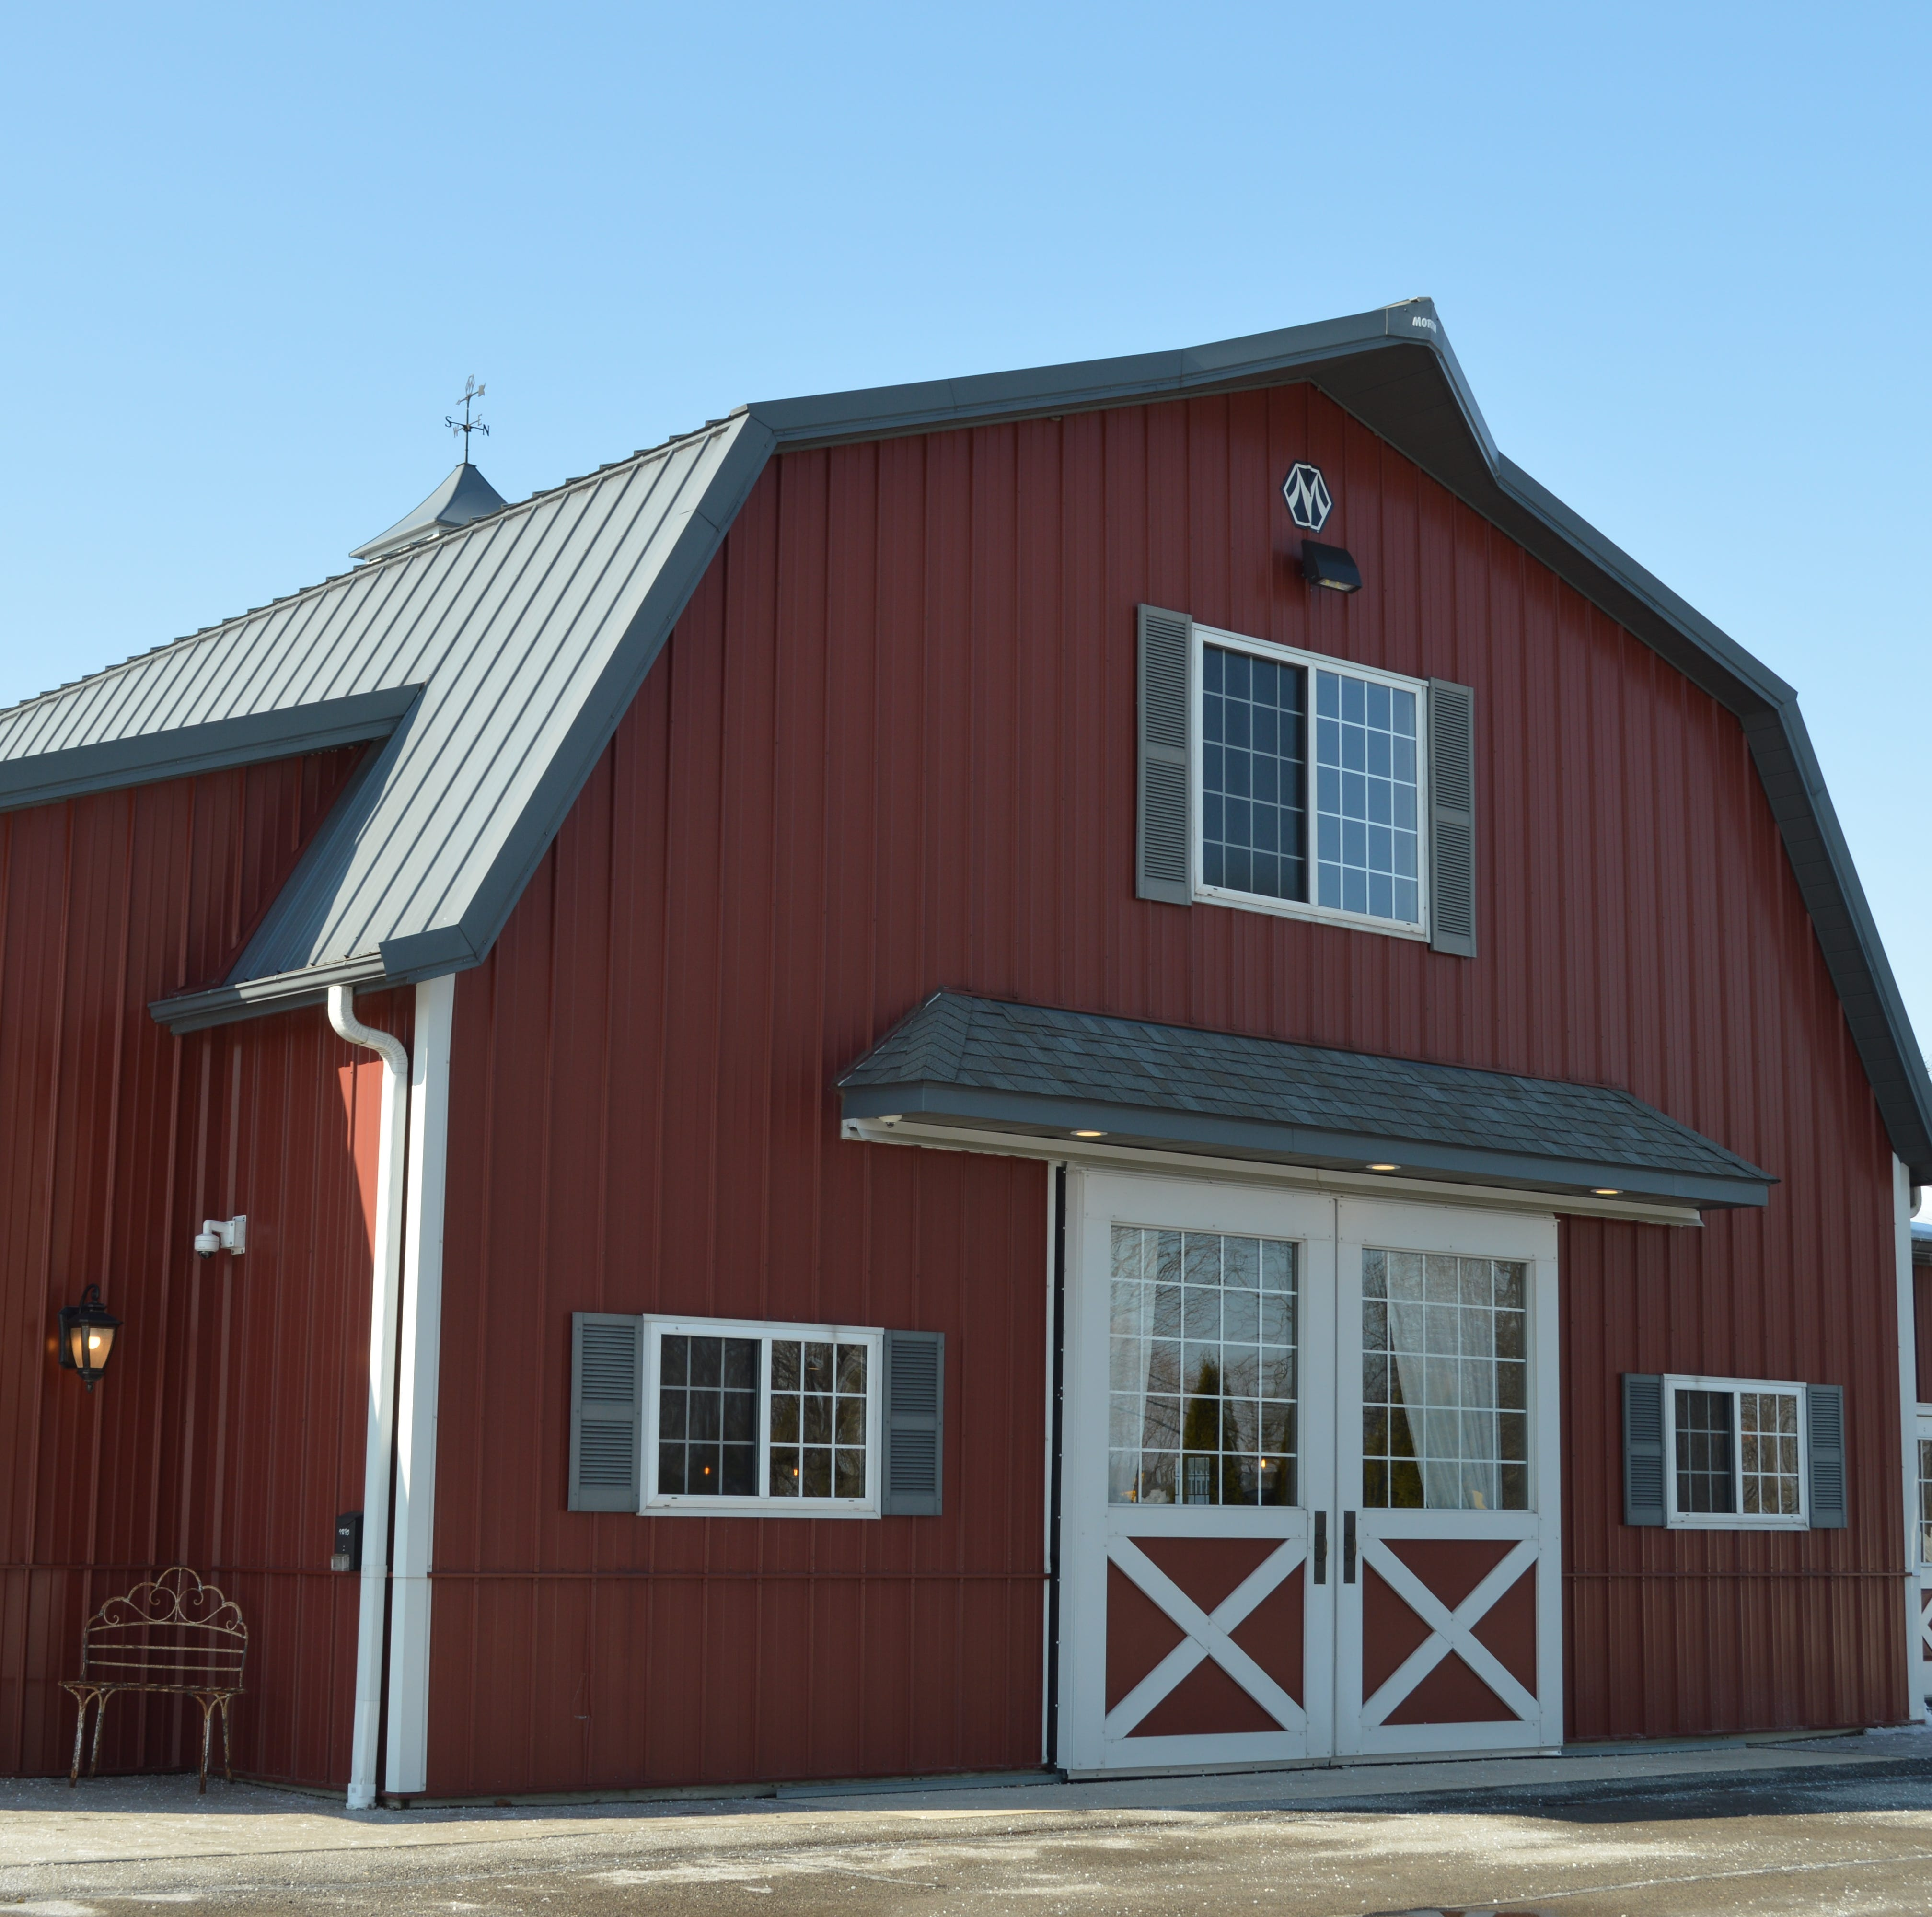 Tony Evers seeks to dismiss lawsuit over whether wedding barns should get liquor licenses